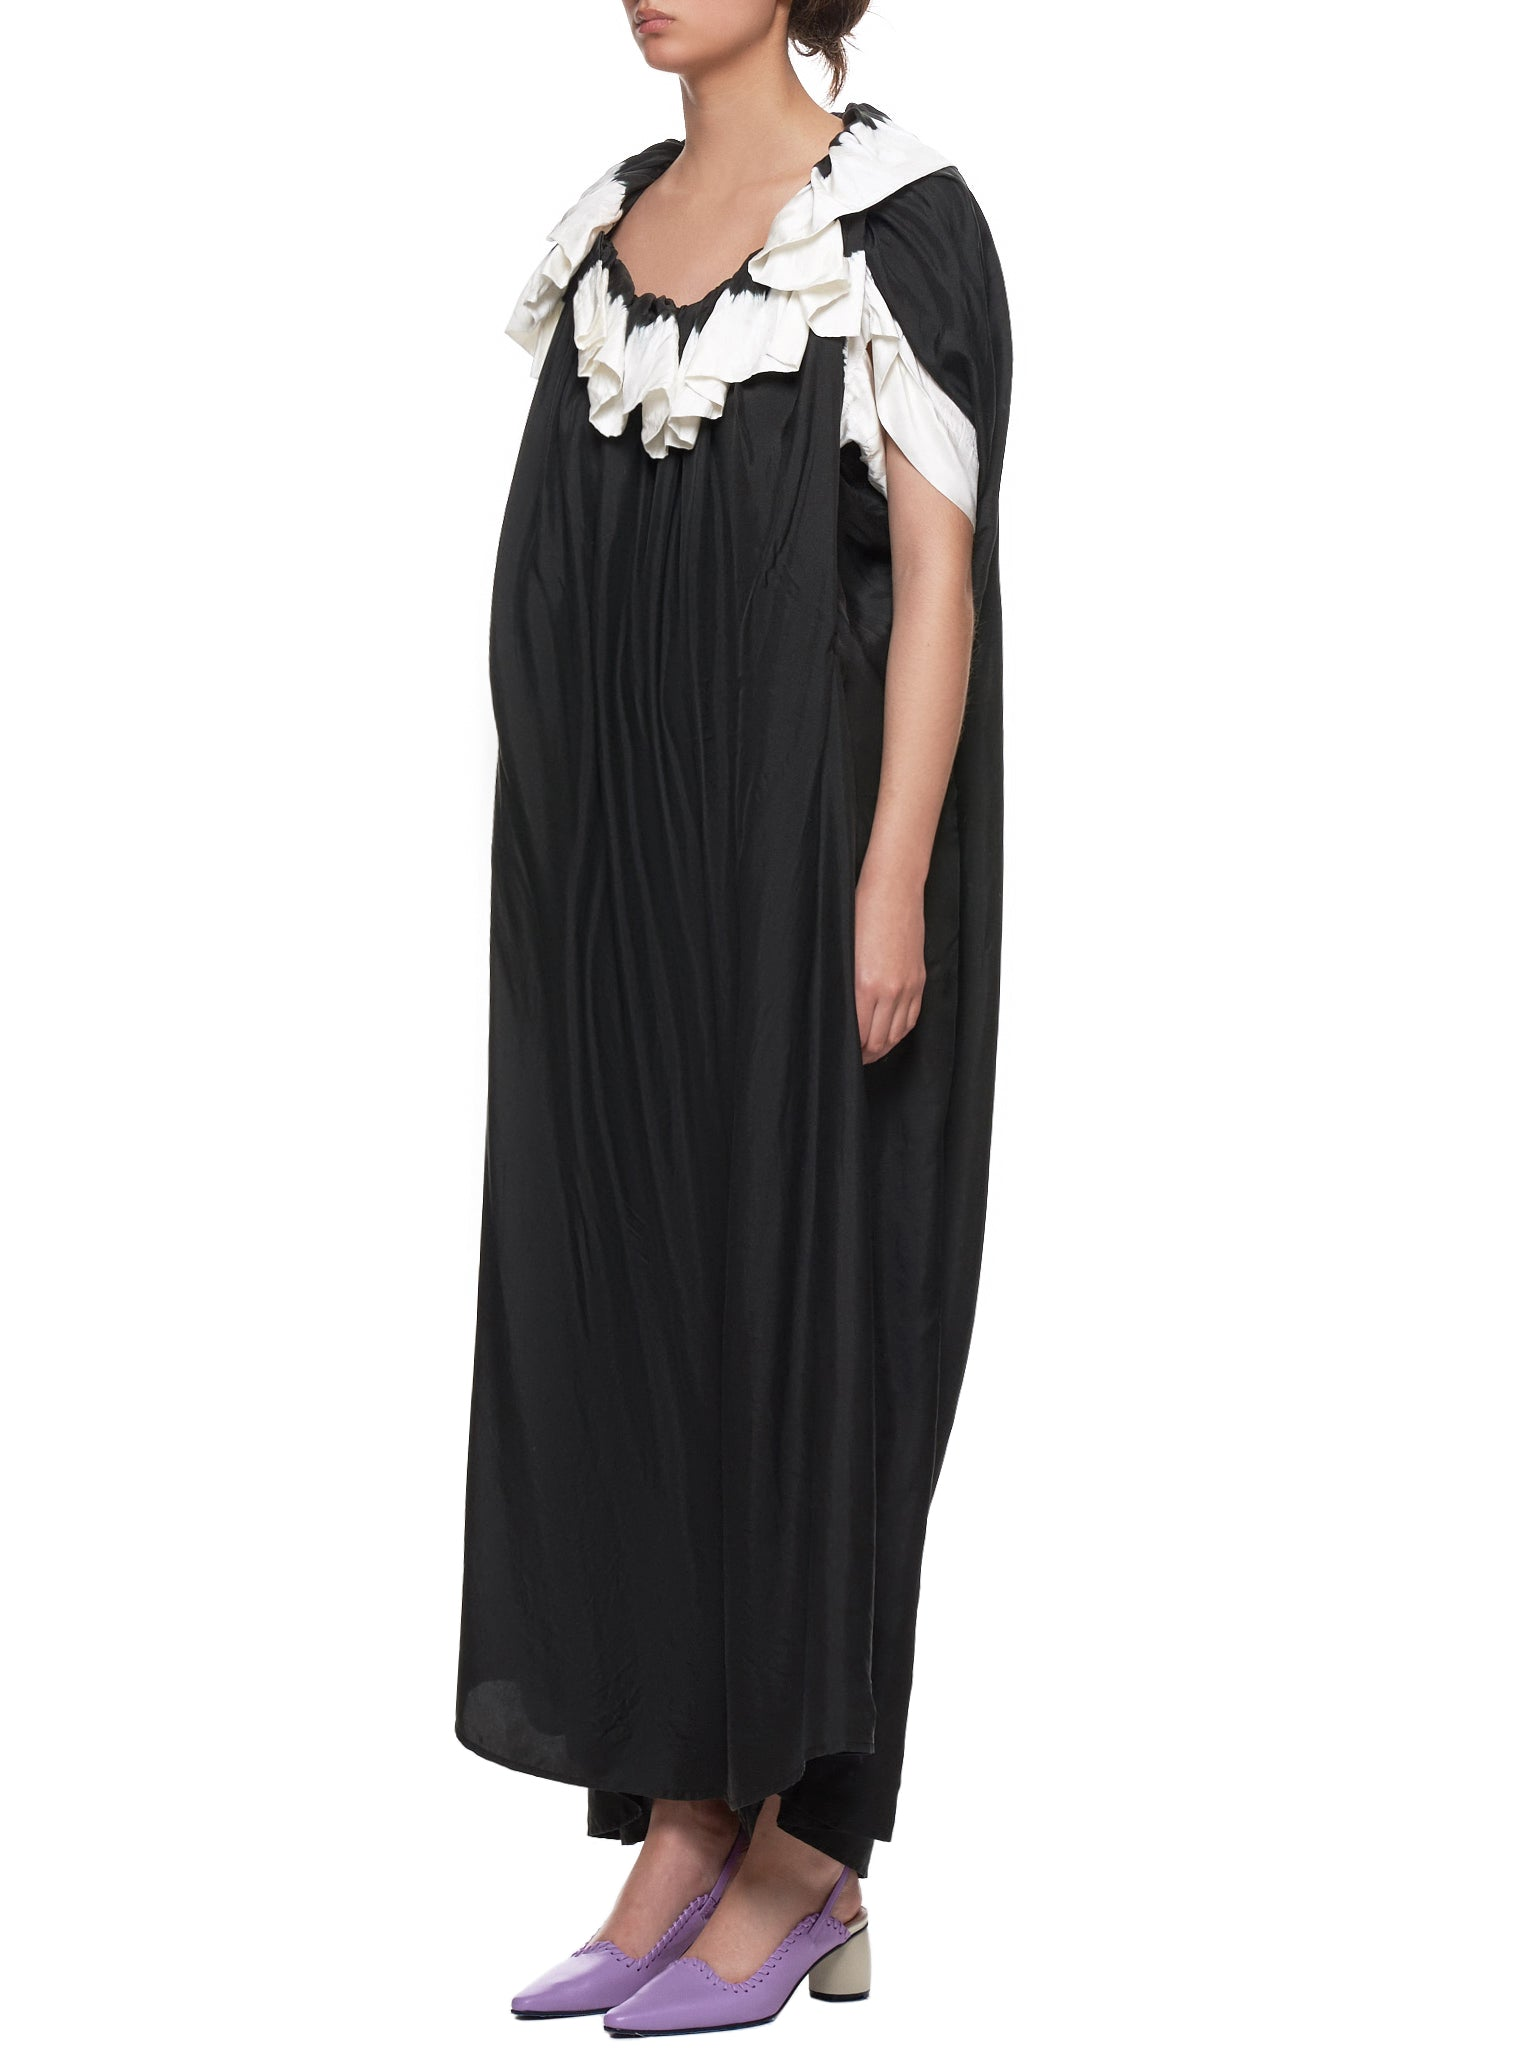 Bernhard Willhelm Dress - Hlorenzo Side